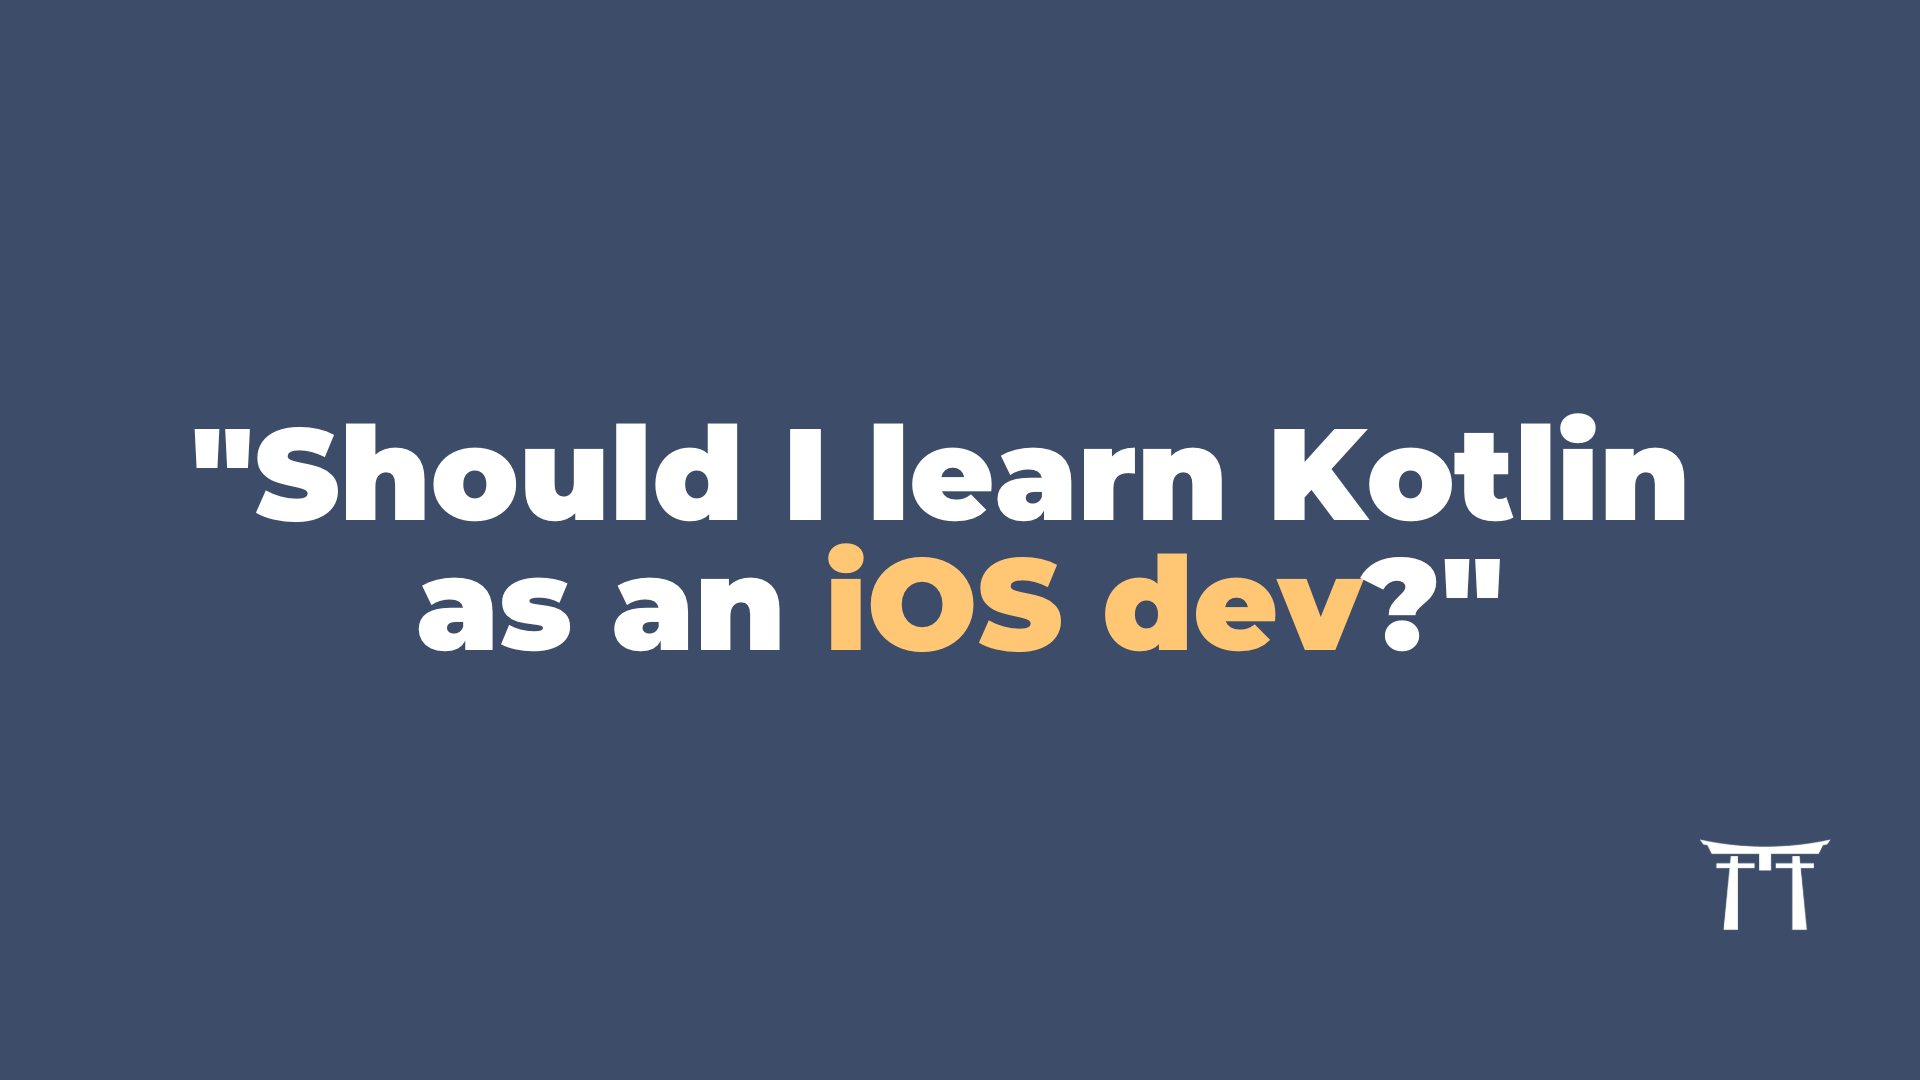 Should iOS devs learn Kotlin or other programming languages